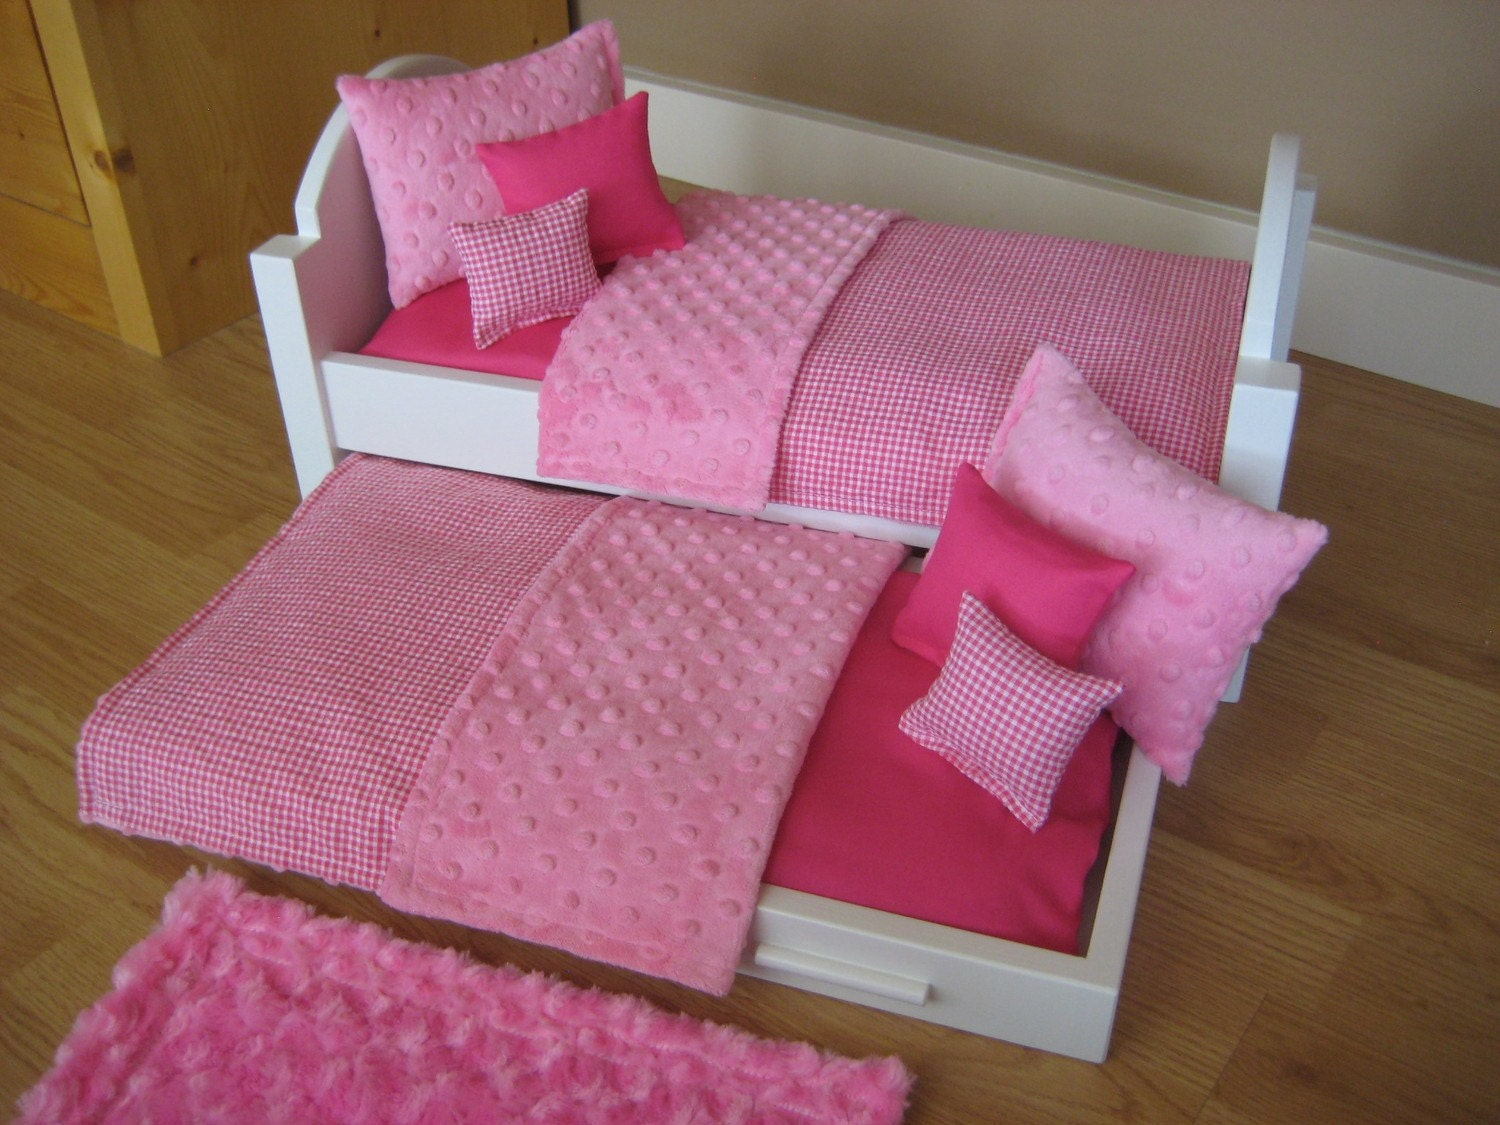 American Girl Doll Bed Trundle Bed 18 inch Doll Furniture with Pink ...